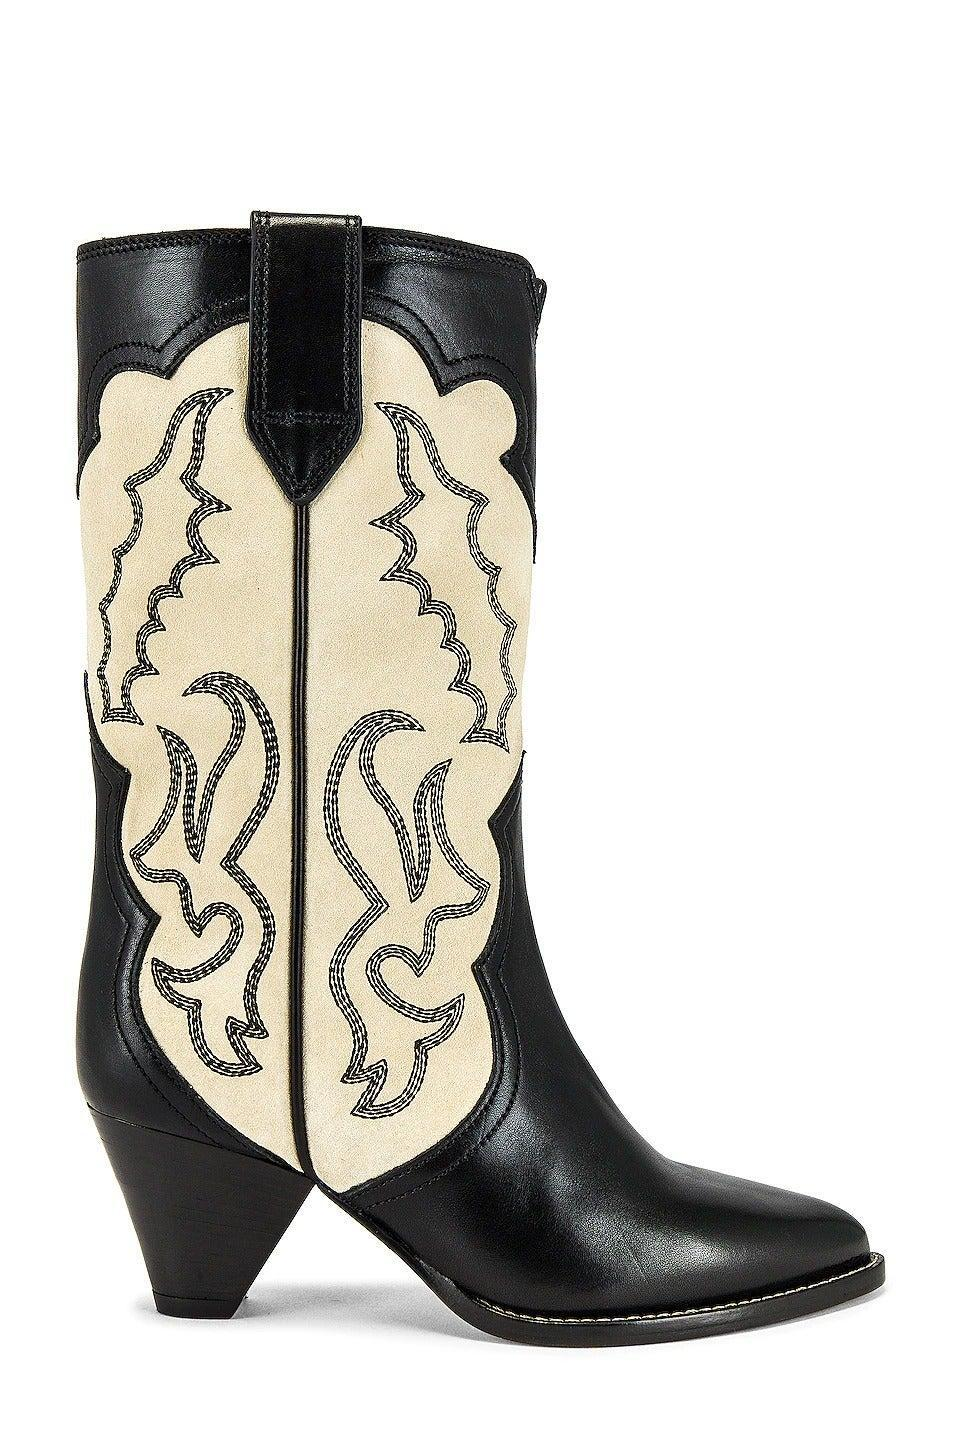 """<br><br><strong>Isabel Marant</strong> Linle Bootie, $, available at <a href=""""https://www.revolve.com/isabel-marant-linle-bootie/dp/IMAR-WZ112/?d=Womens&page=1&lc=15&itrownum=4&itcurrpage=1&itview=05"""" rel=""""nofollow noopener"""" target=""""_blank"""" data-ylk=""""slk:Revolve"""" class=""""link rapid-noclick-resp"""">Revolve</a>"""